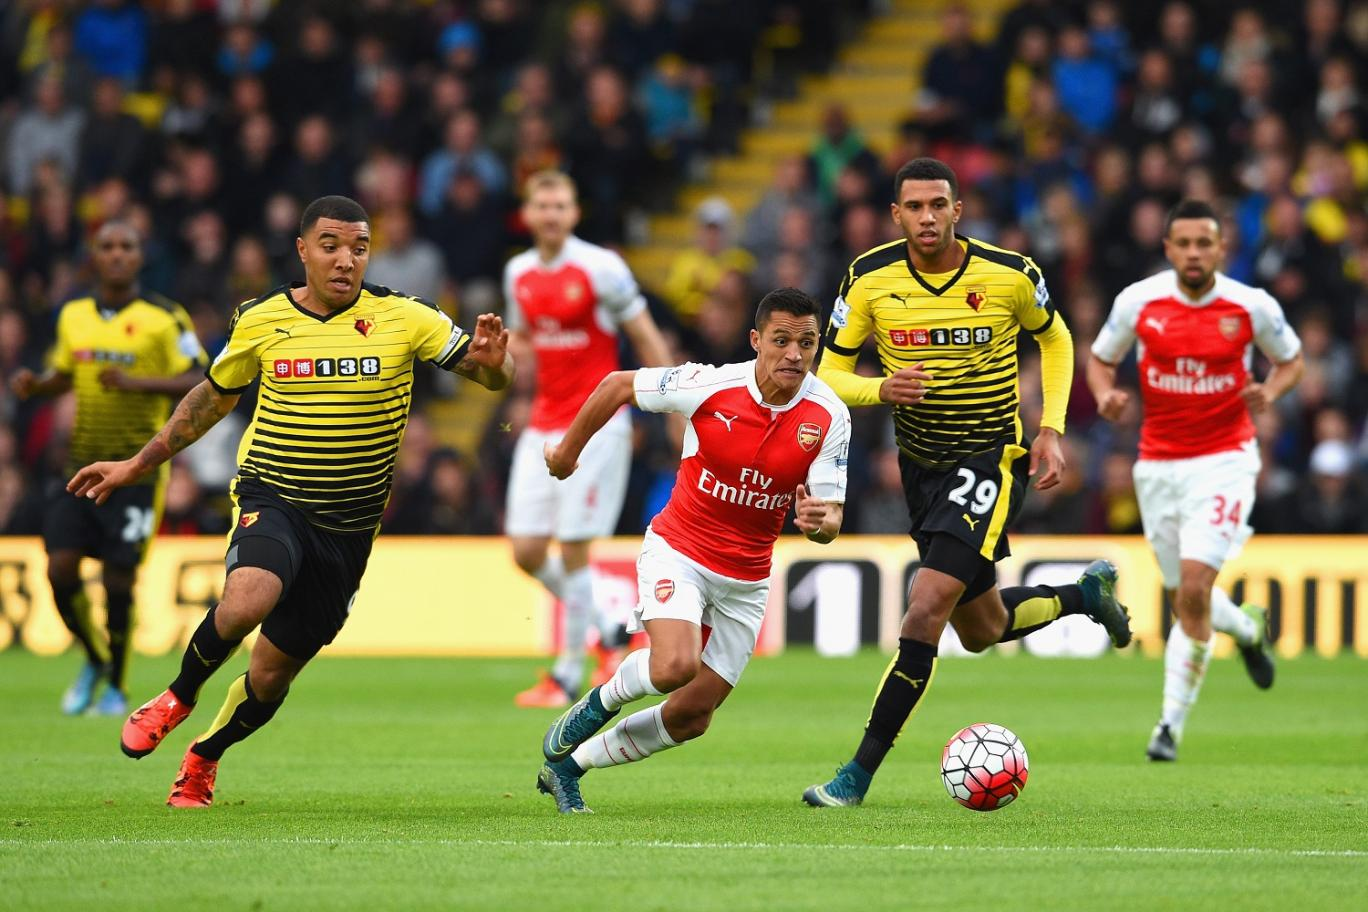 Can Watford deal another blow to Wenger and Arsenal?